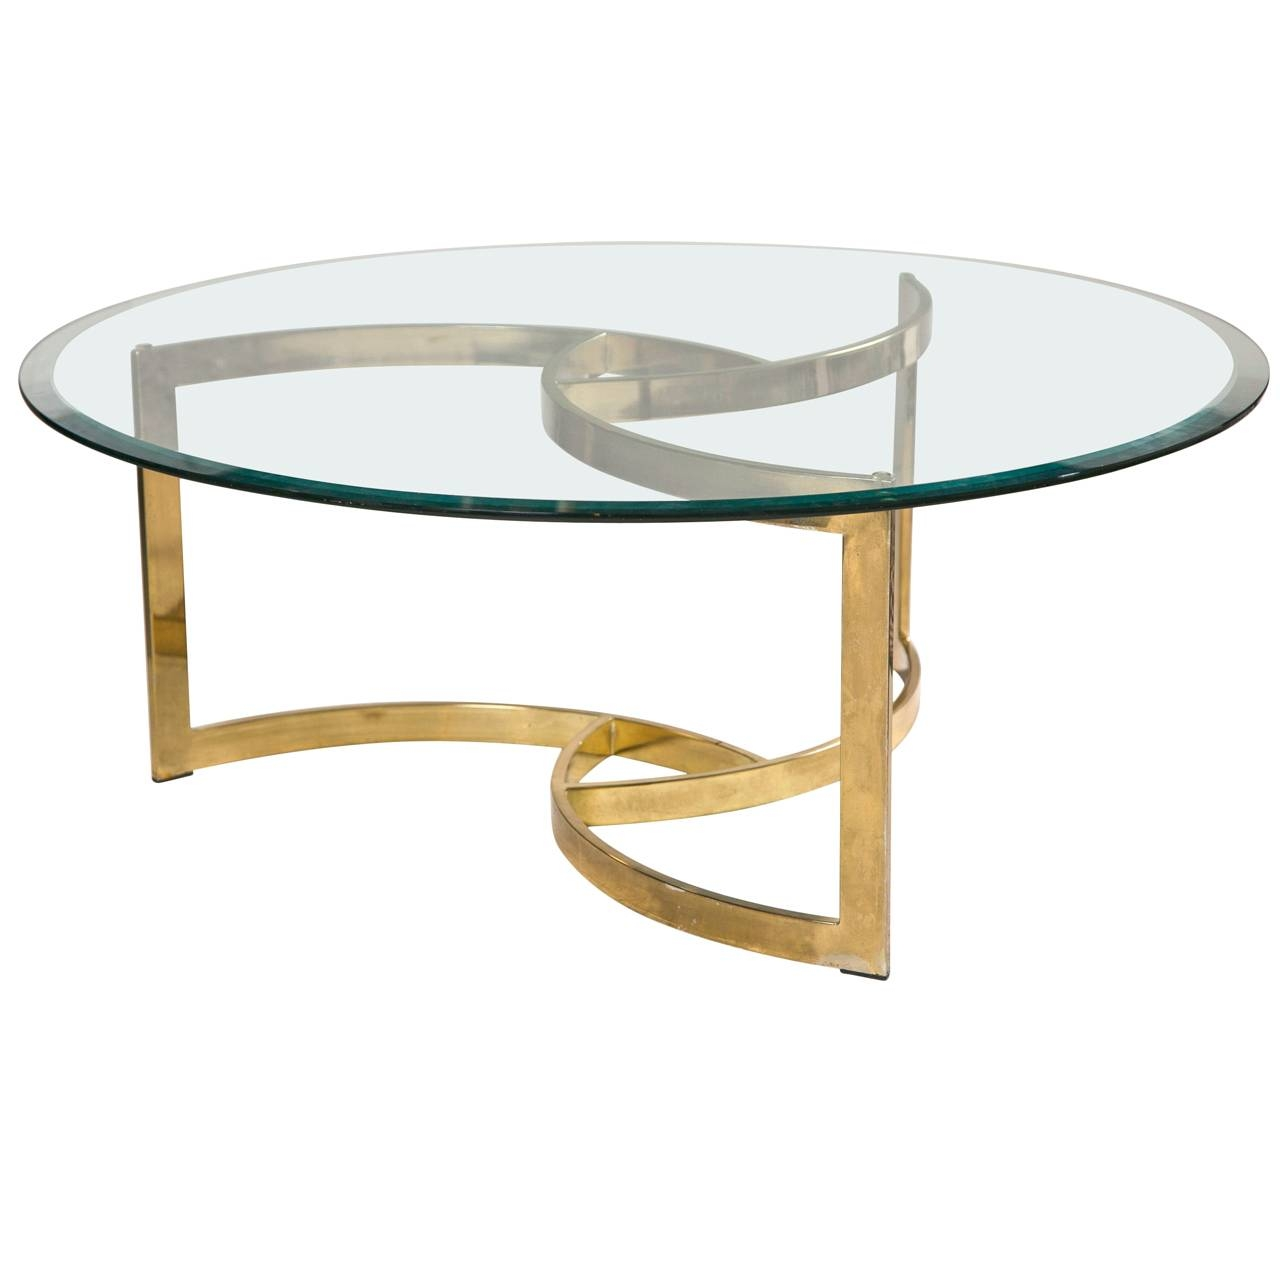 Stunning Round Metal And Glass Coffee Table With Antique And throughout Stylish Coffee Tables (Image 24 of 30)